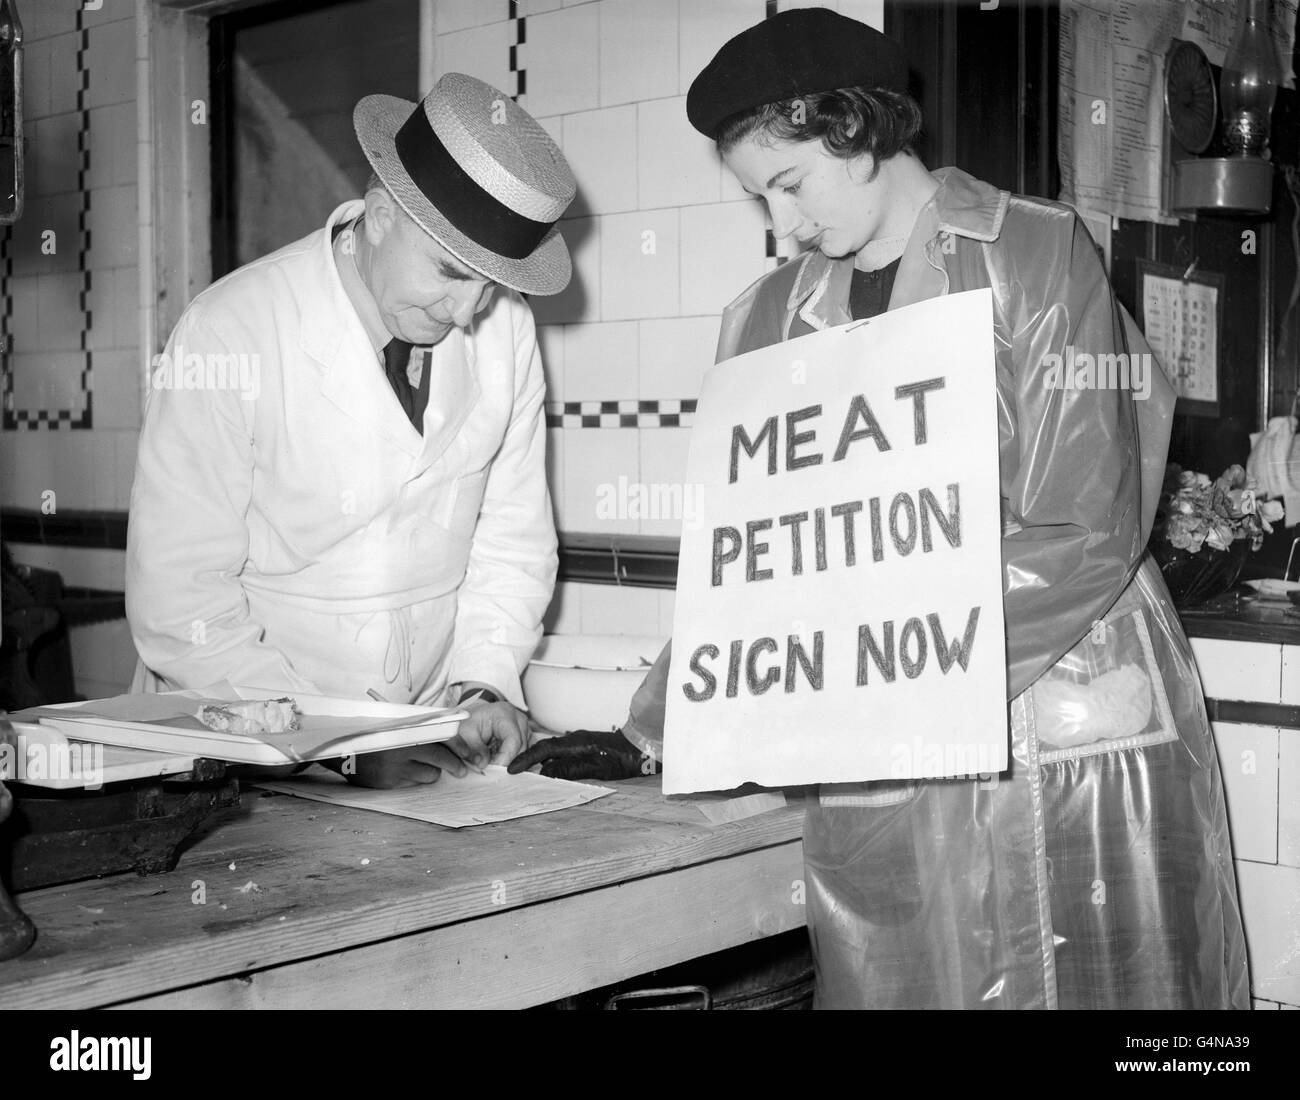 Food - Meat Petition - London - Stock Image